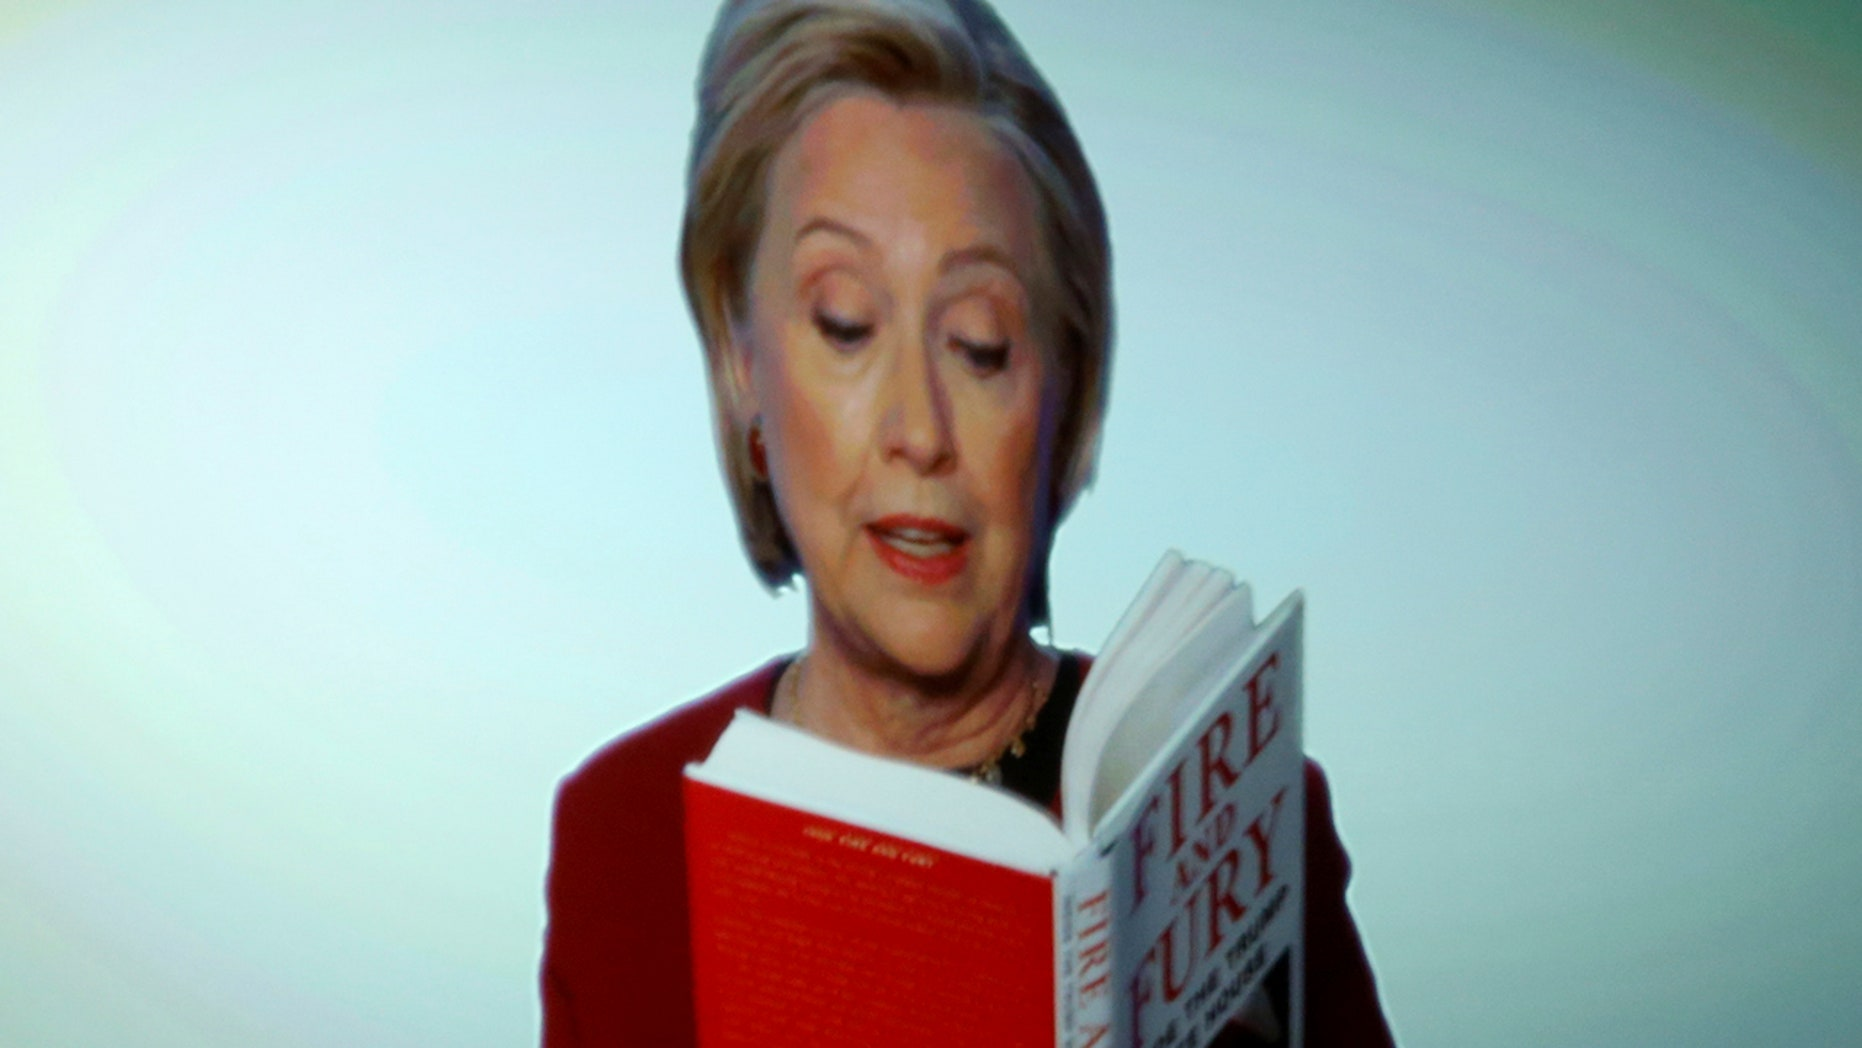 Hillary Clinton emerged from the woods of Chappaqua, New York to crack a joke at President Trump's expense during Sunday night's Grammy Awards.